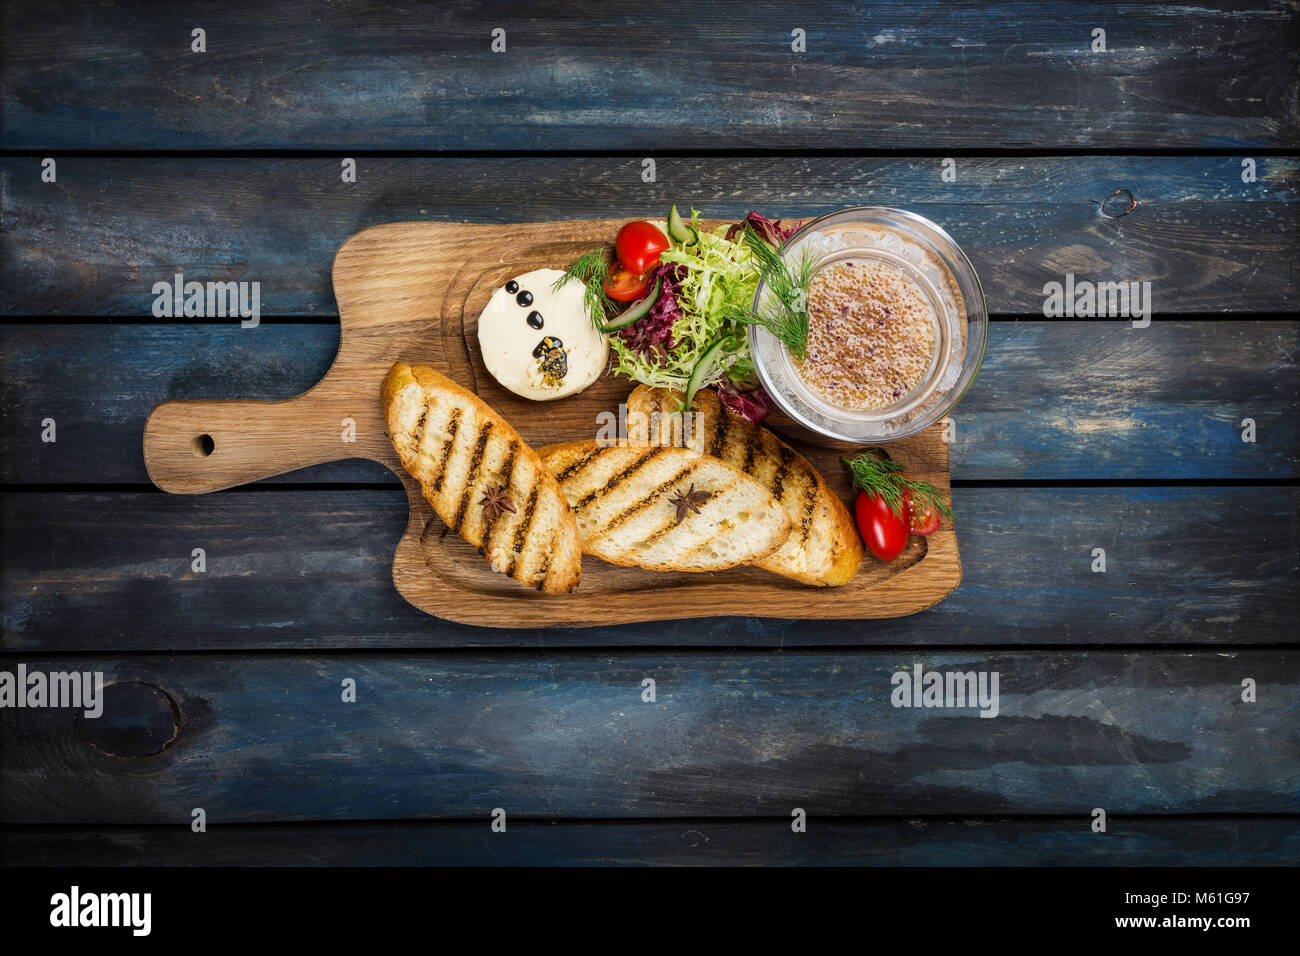 Toast with butter and caviar on a wooden background - Stock Image